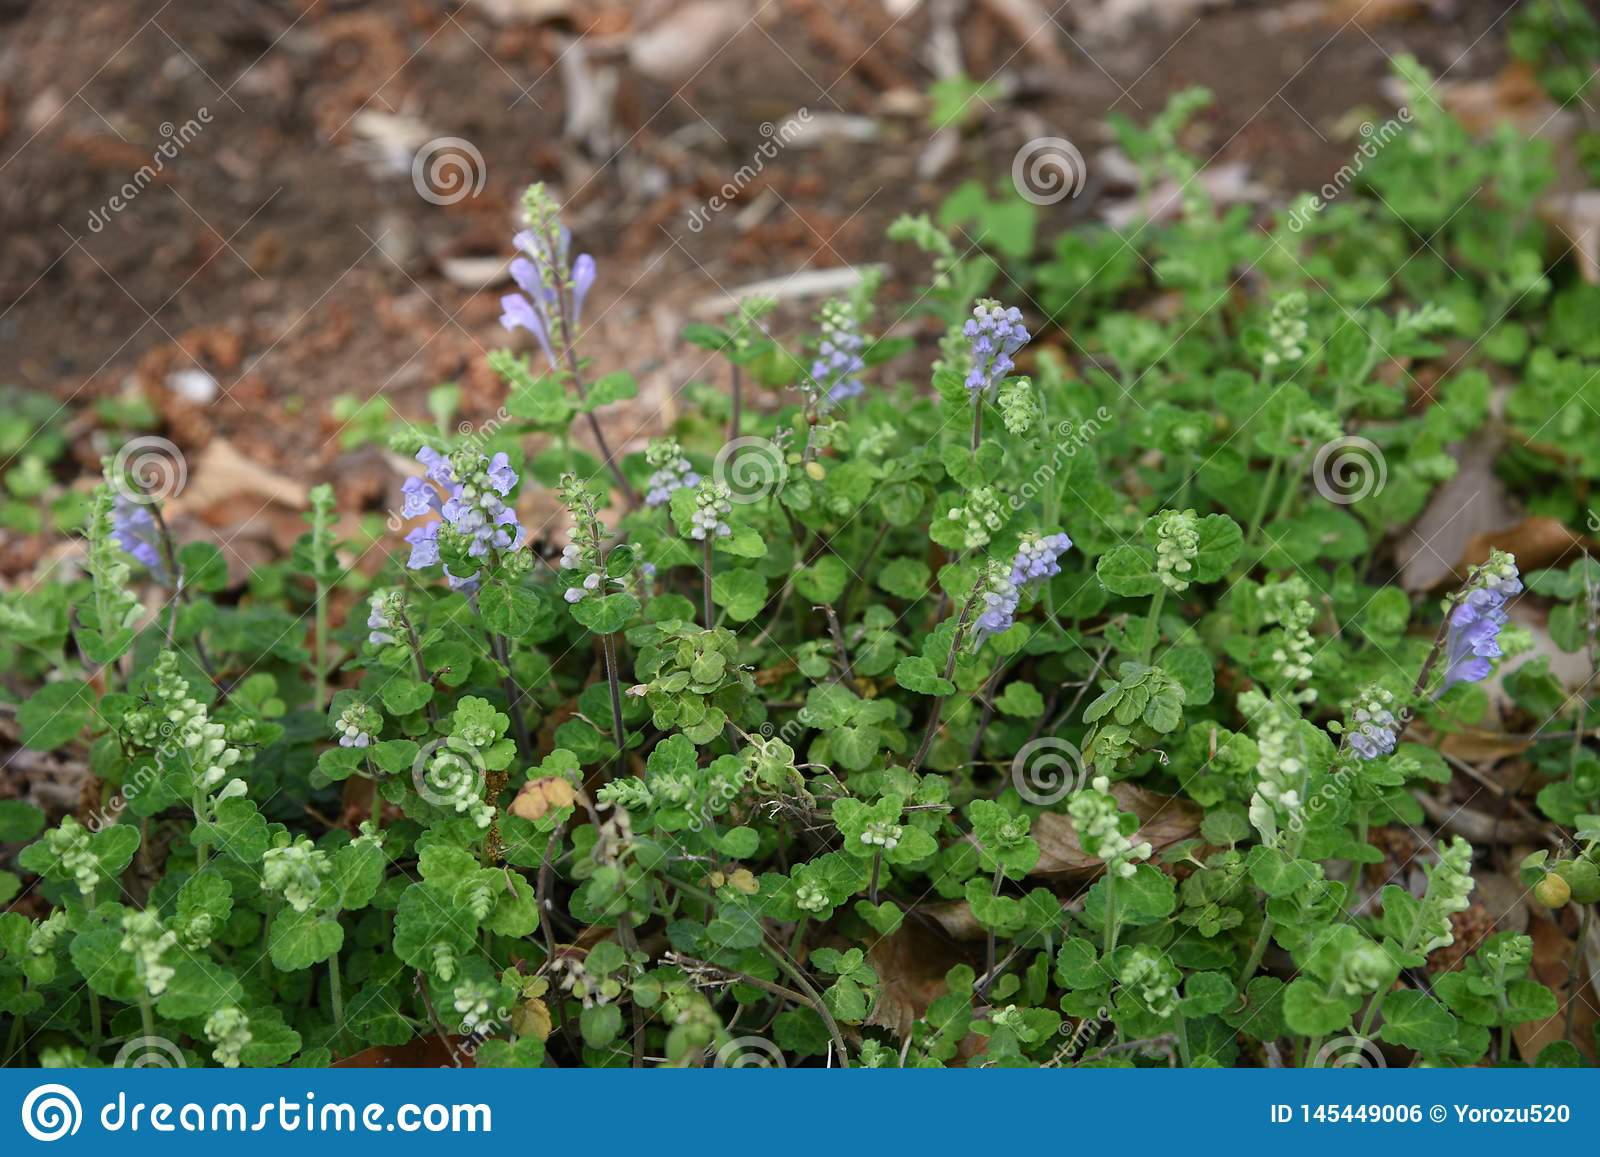 Japanese skullcap flowers stock photo  Image of background - 145449006